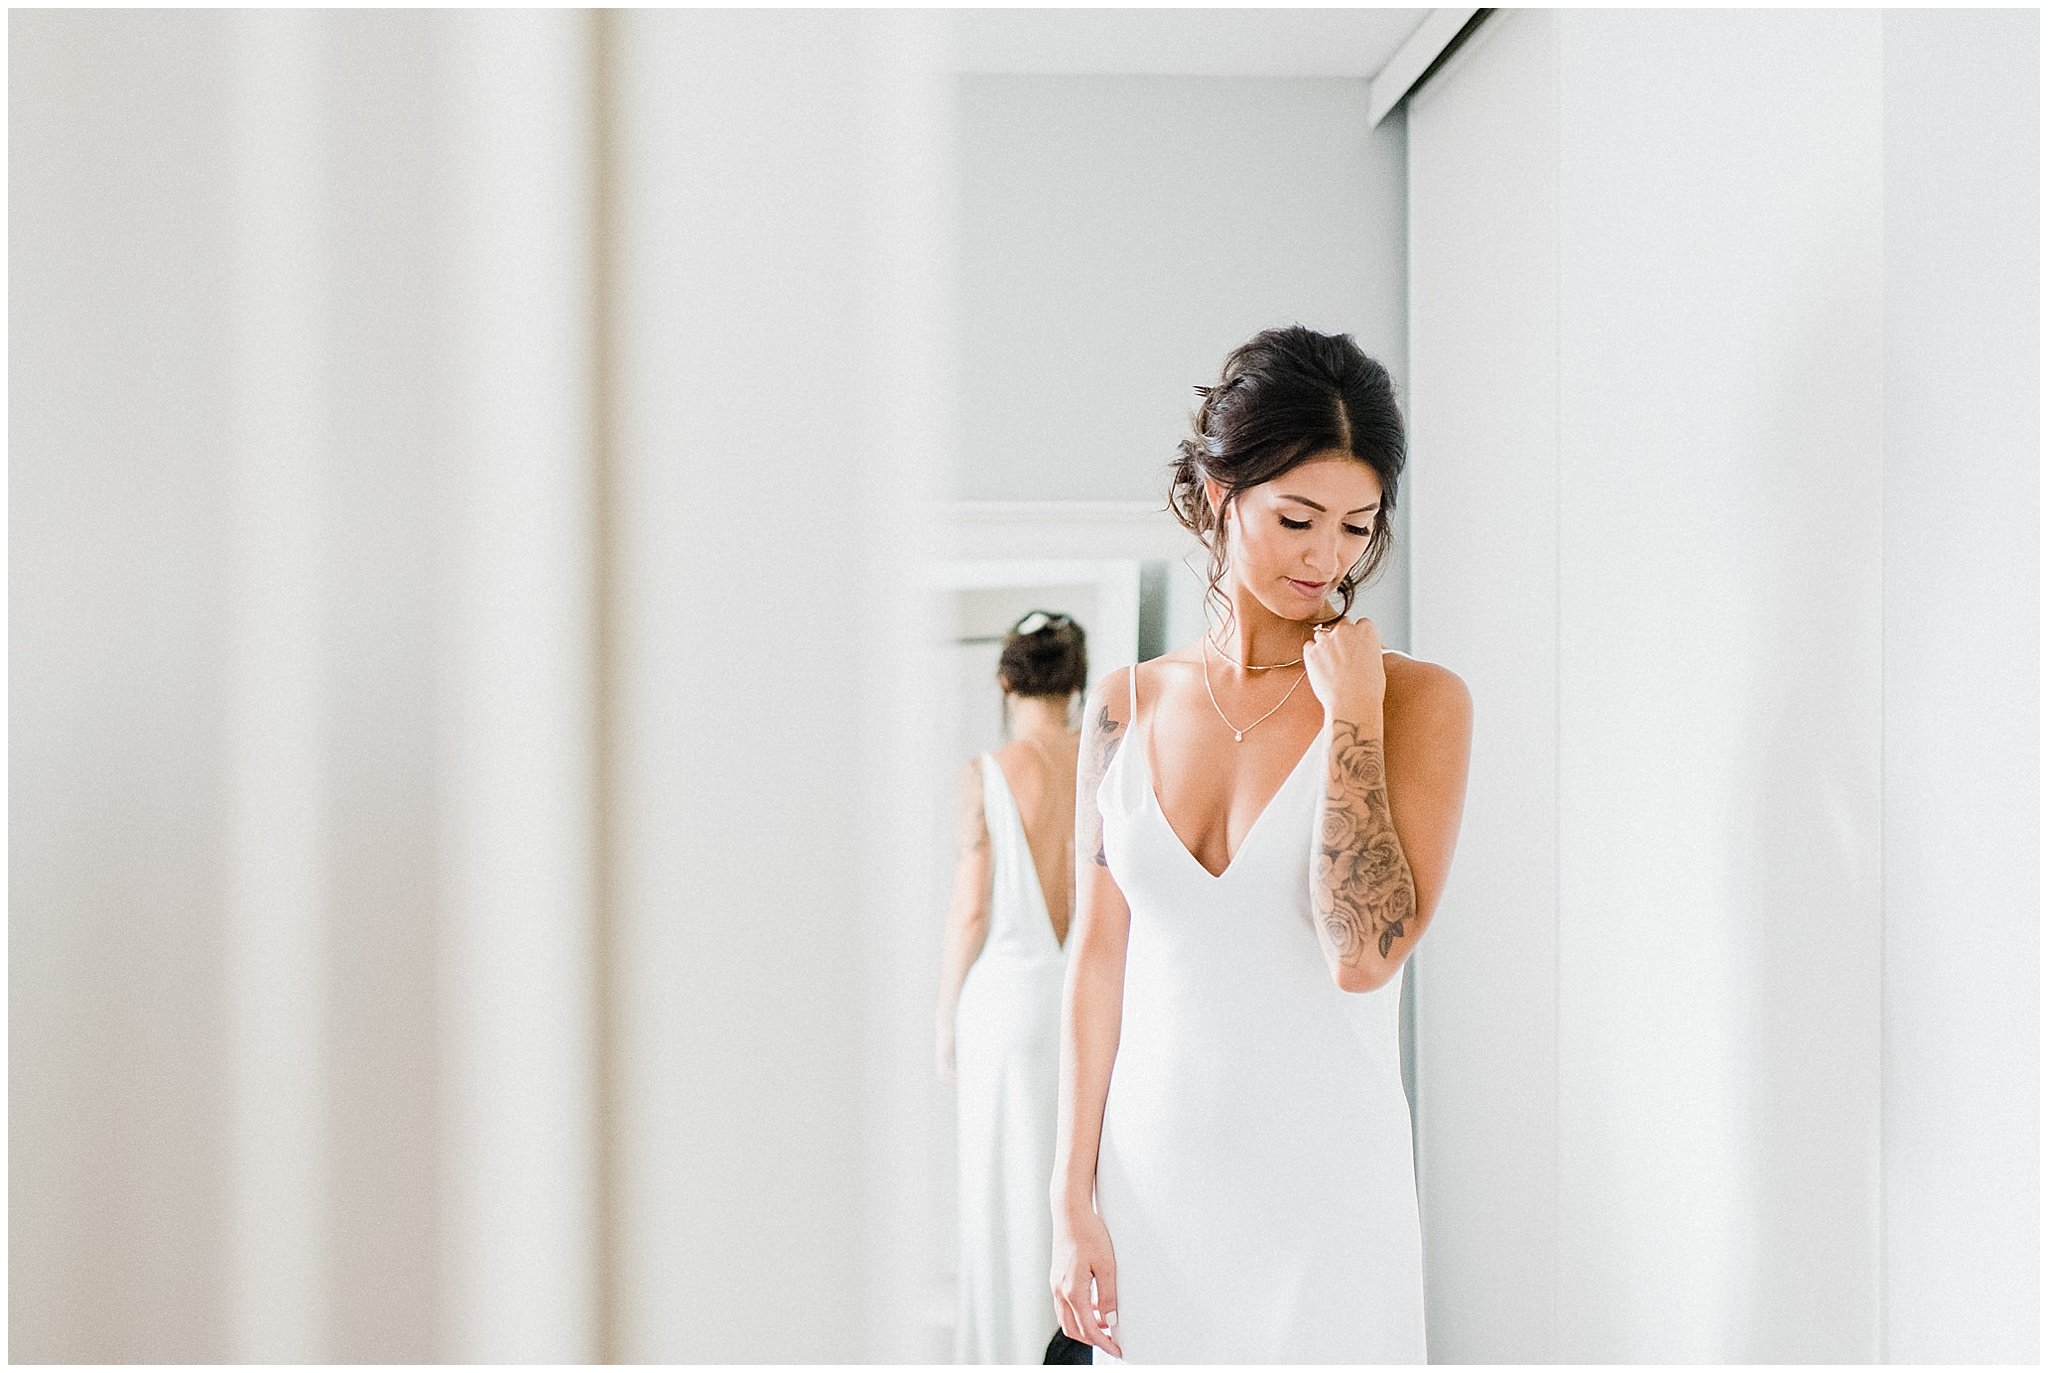 Slip-style vintage-inspired wedding gown by A la Robe, photographed by Jenn Kavanagh Photography